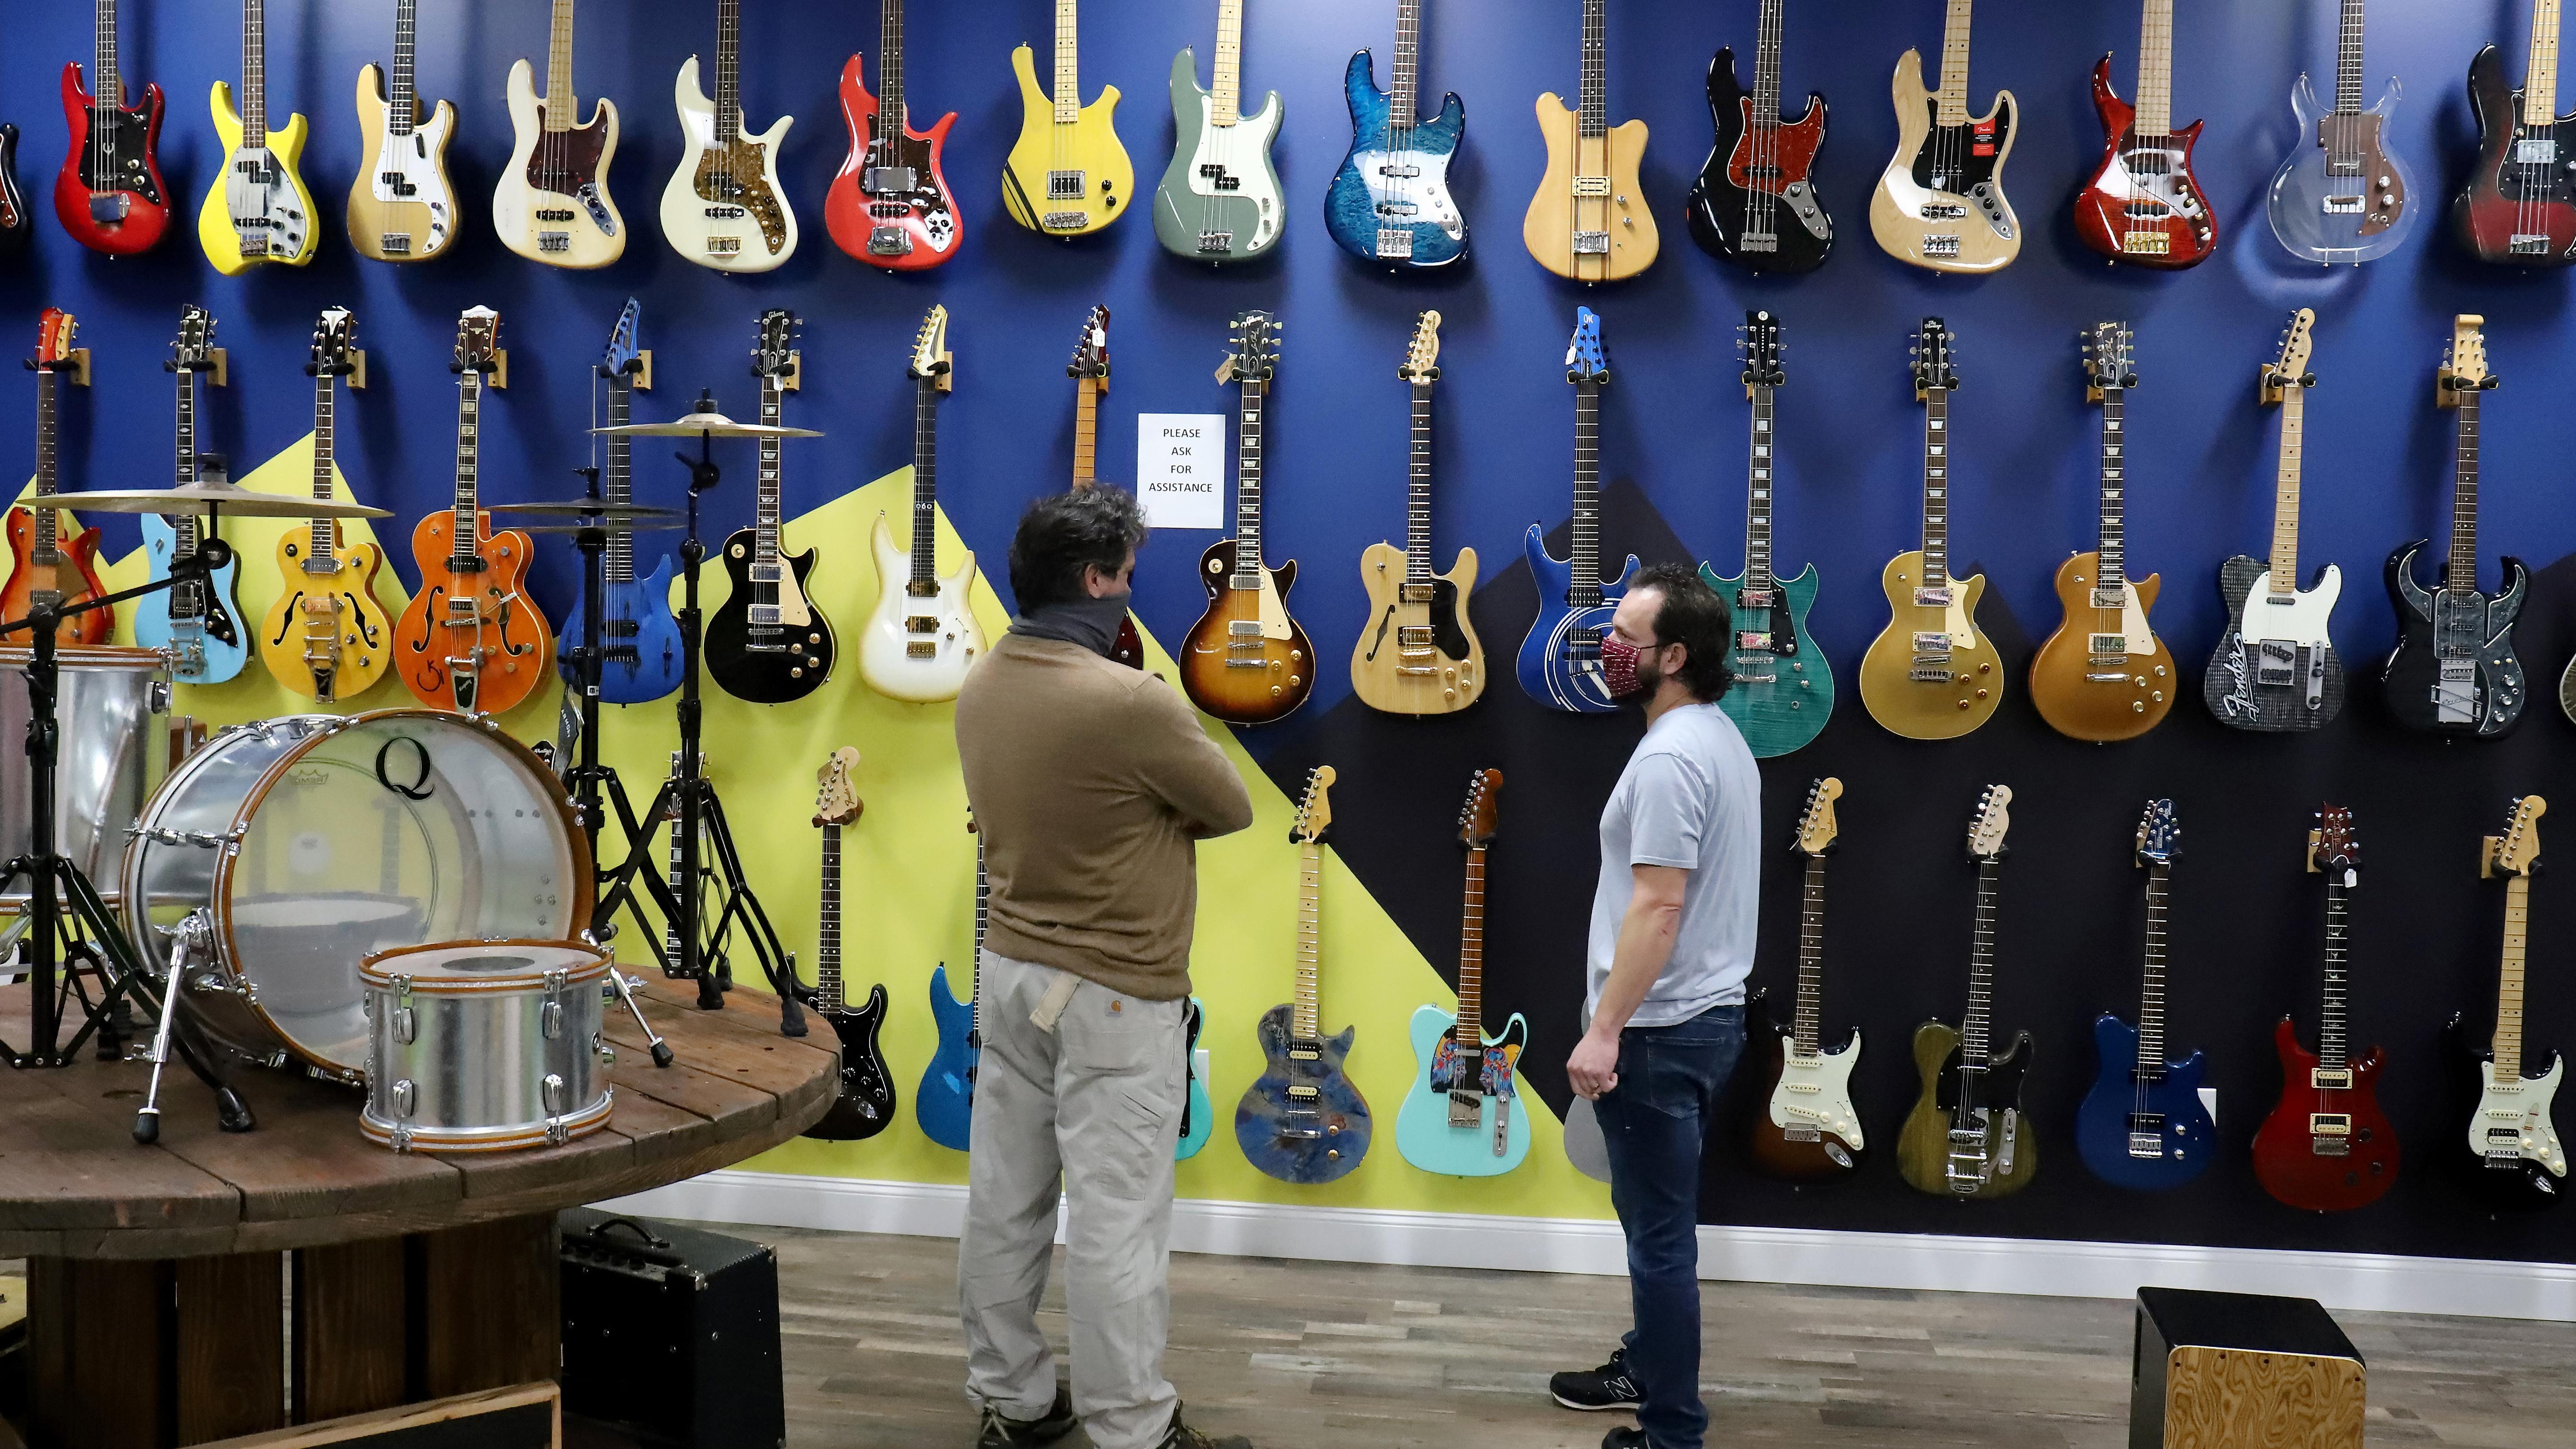 Vintage Vibes boasts more than 400 guitars, creative space